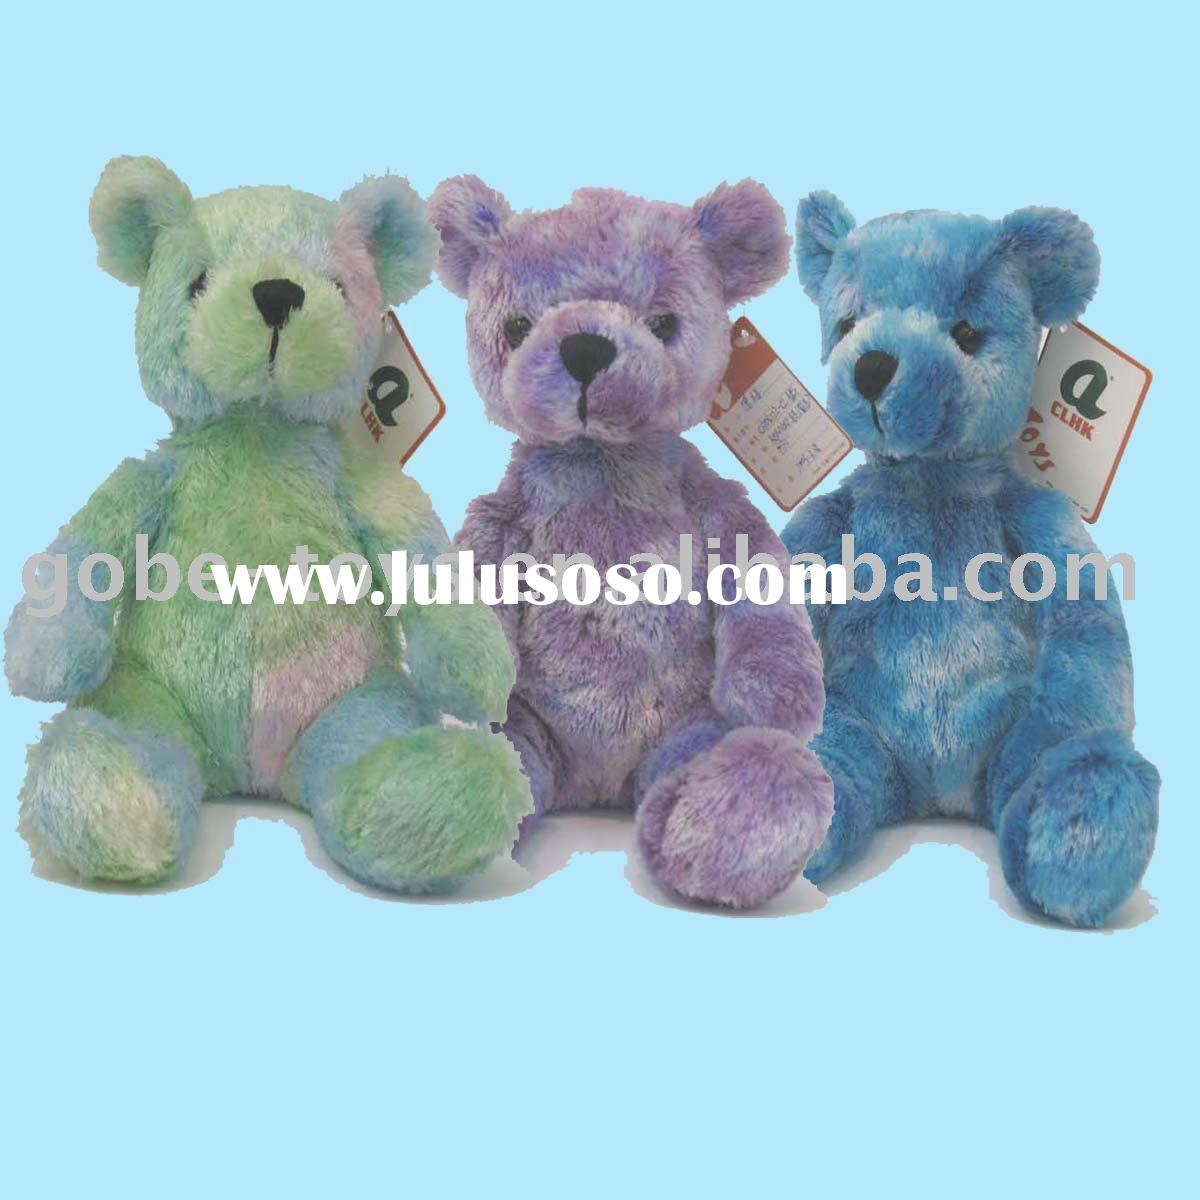 7.5' stuffed & plush teddy bear toys